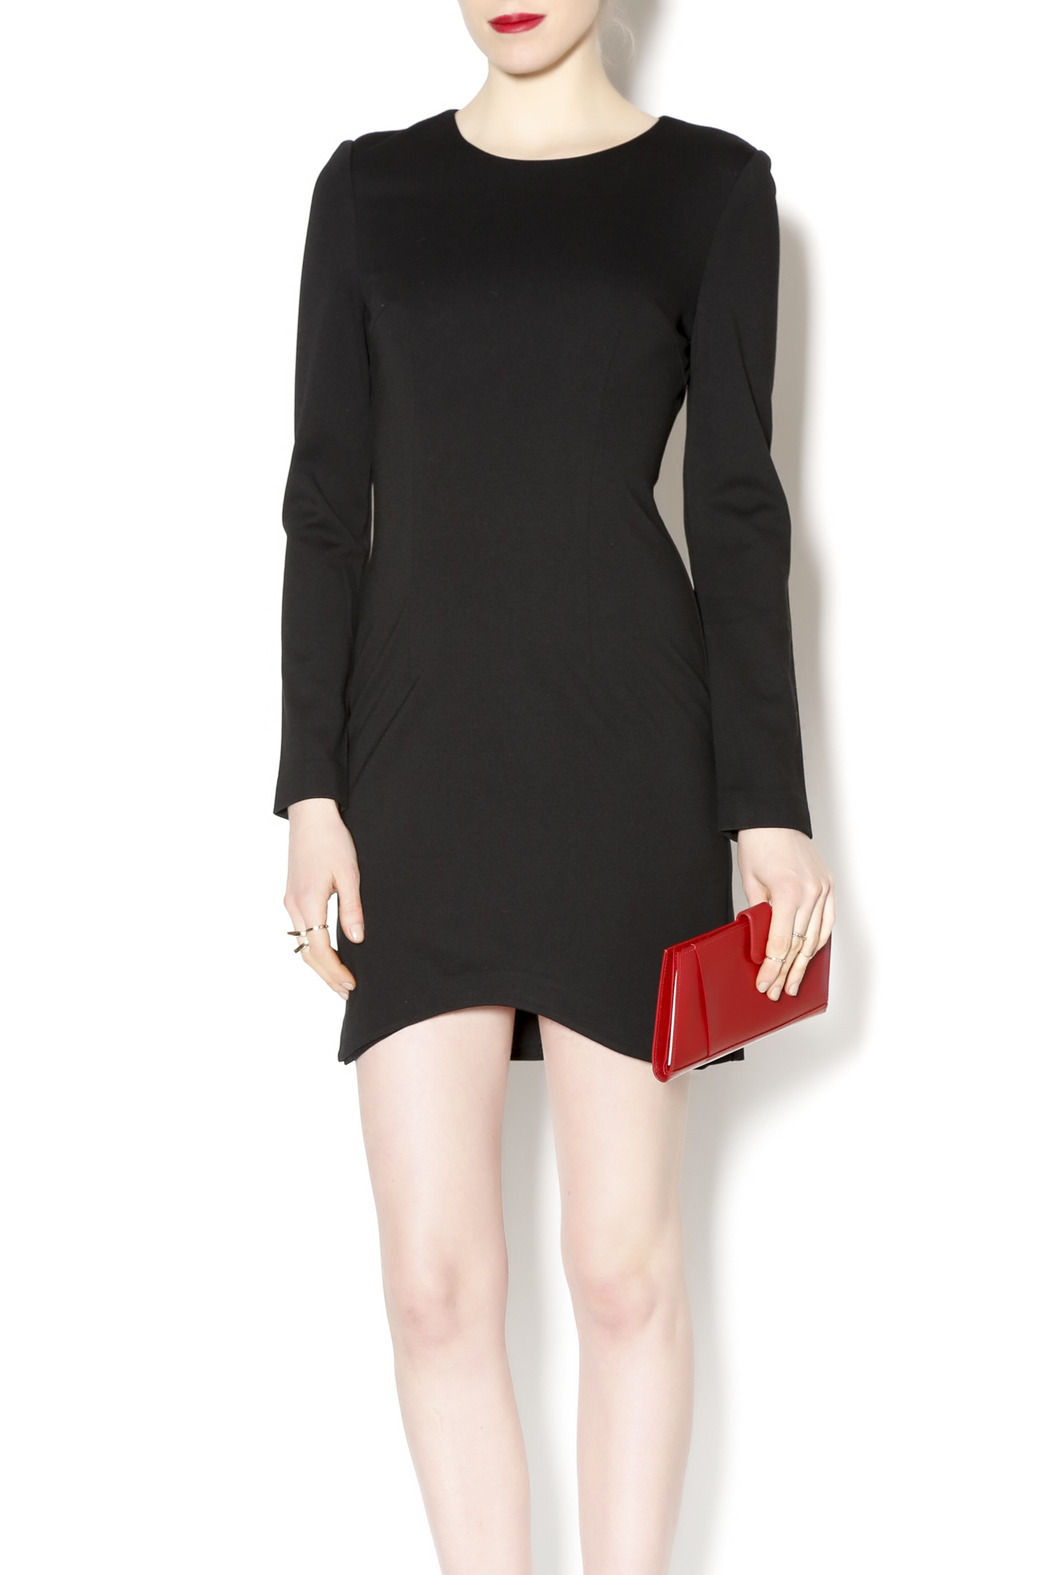 Black Label Black Scoop Hem Dress - Main Image